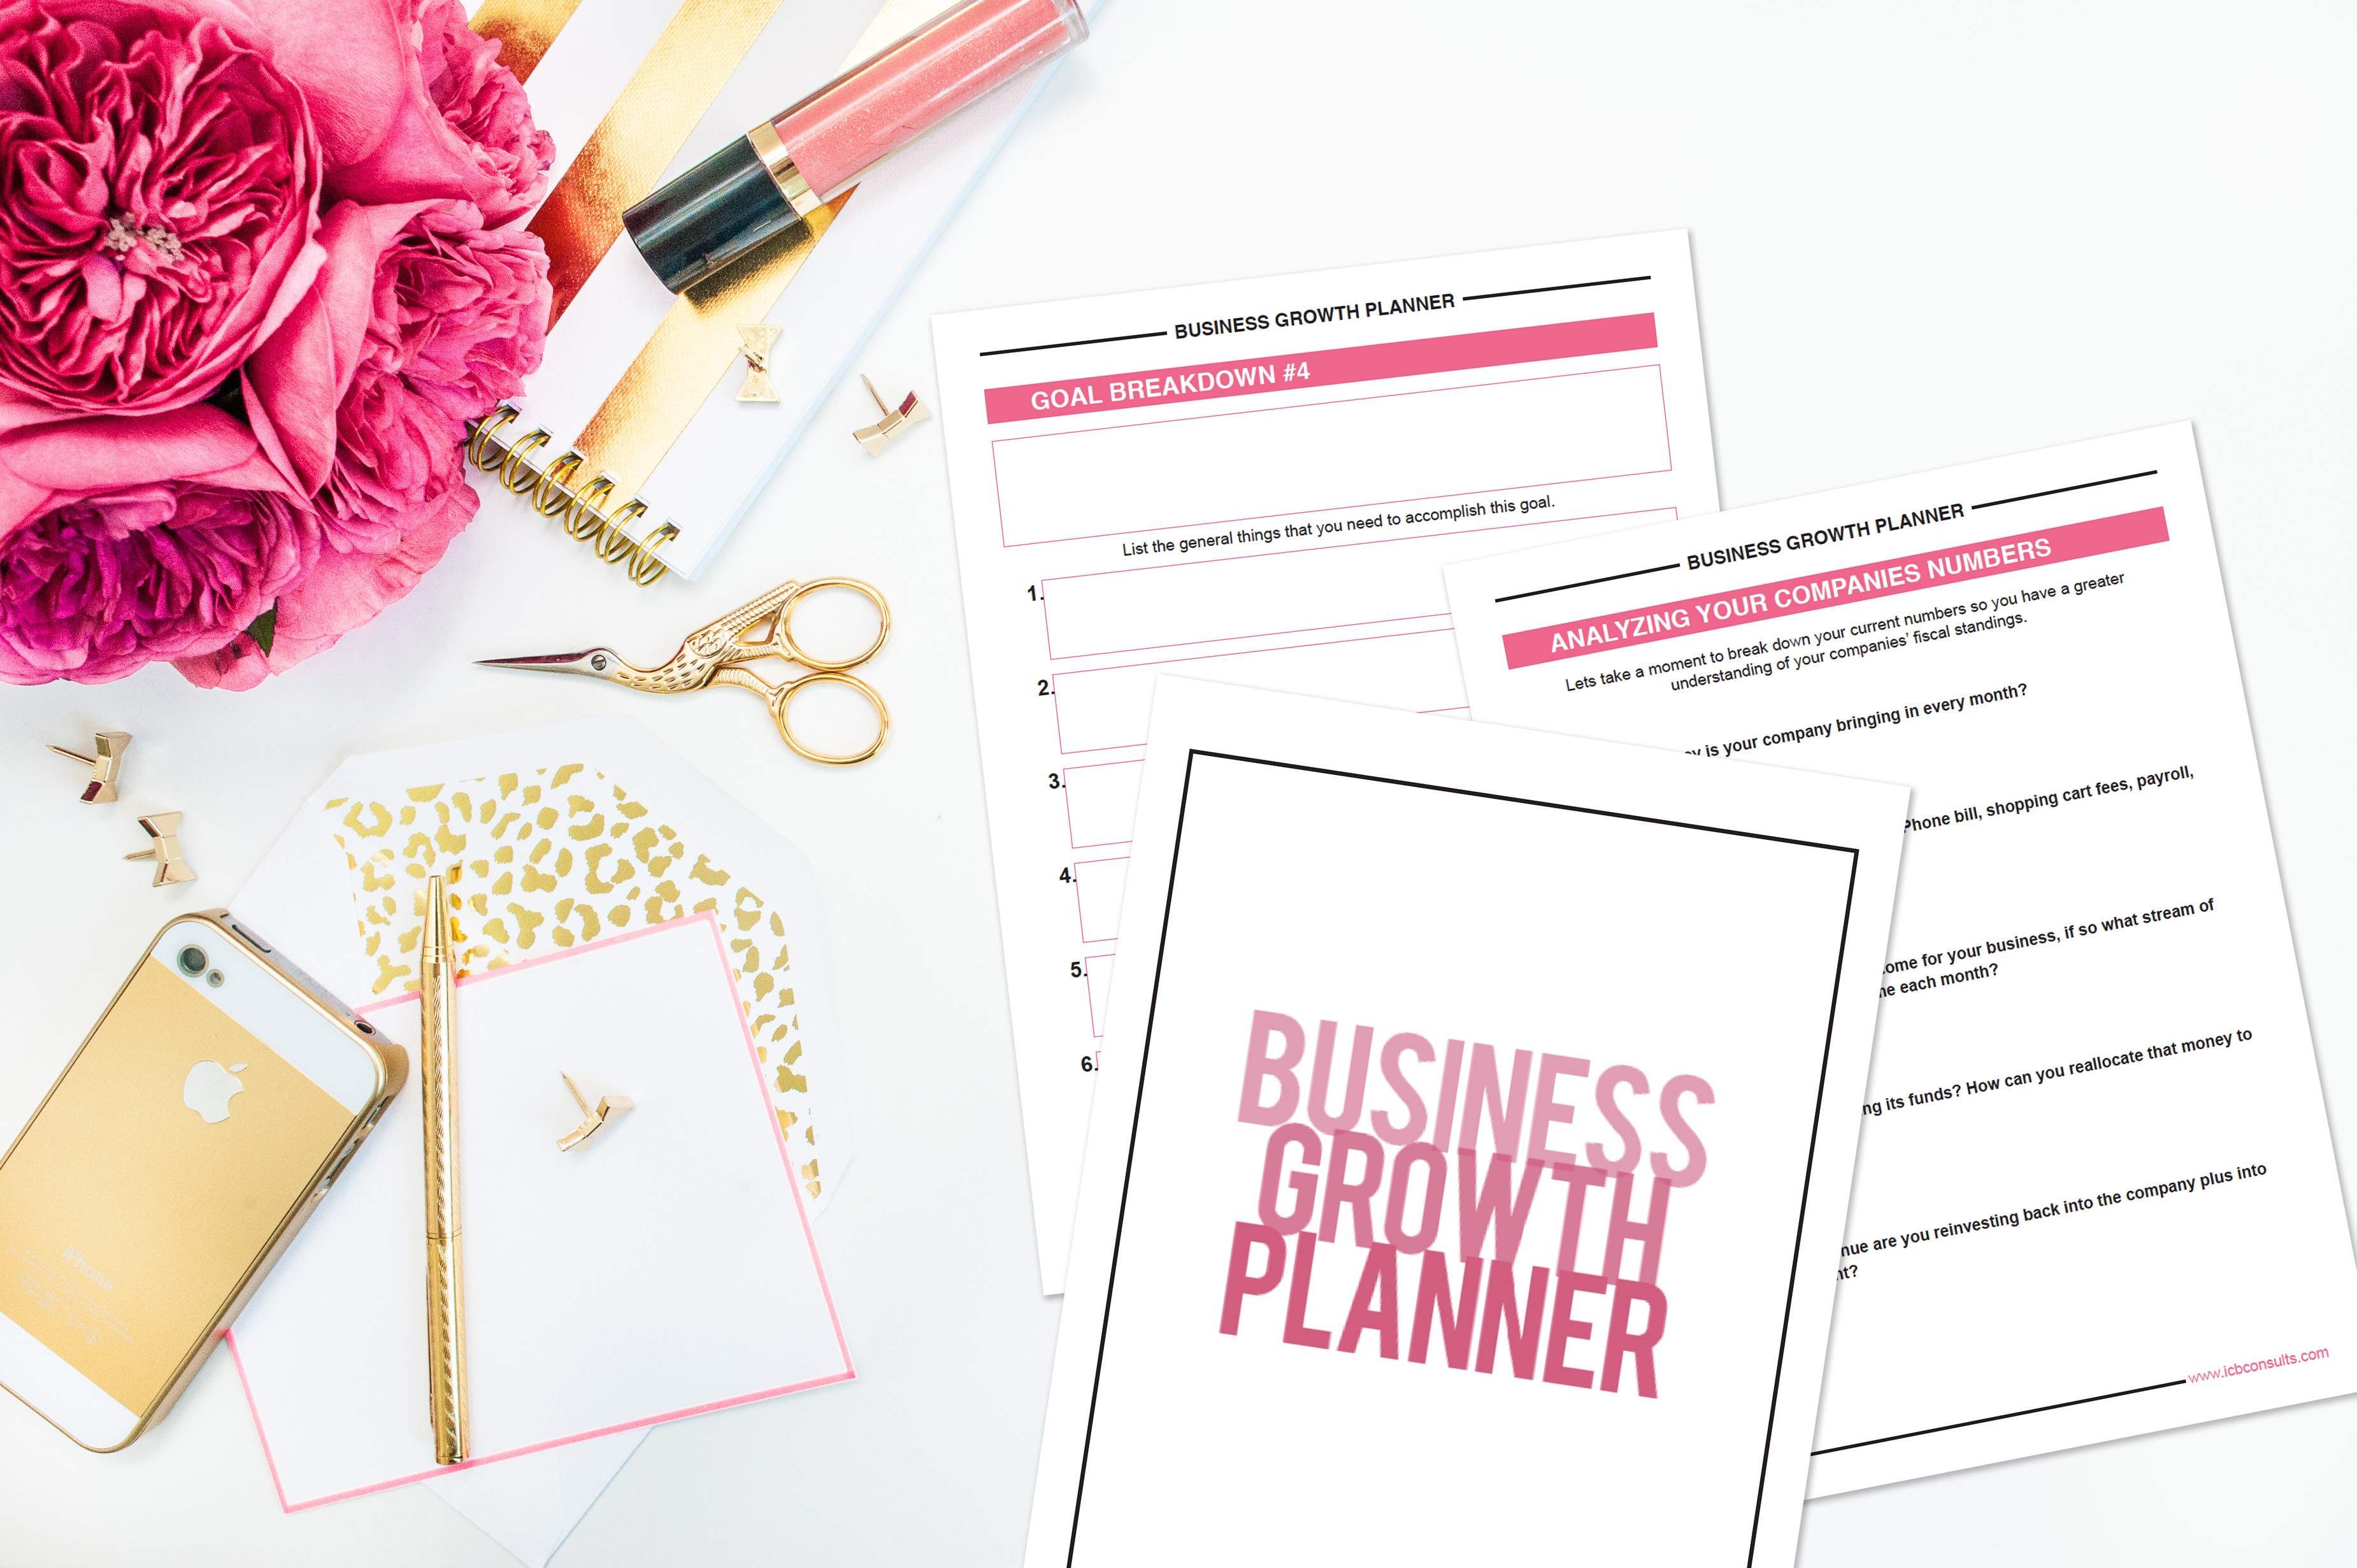 Business Growth Planner